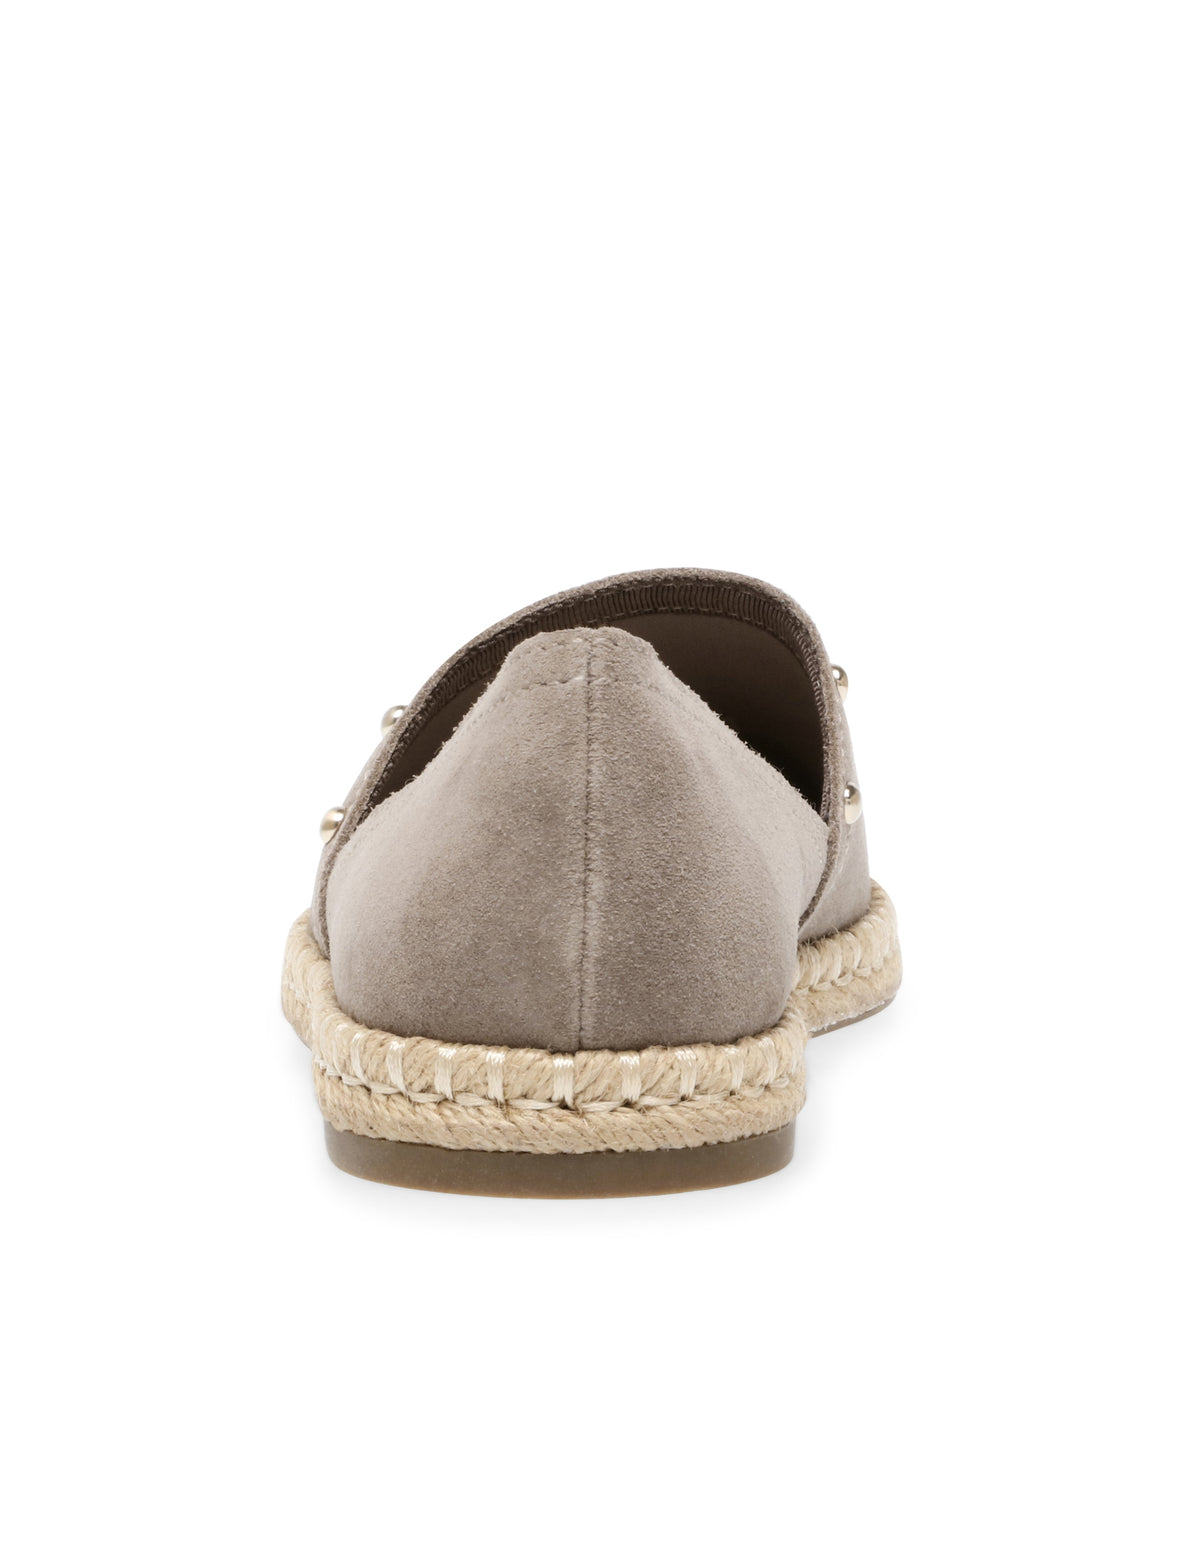 Anne Klein Kaily Studded Slip On Espadrille in Taupe